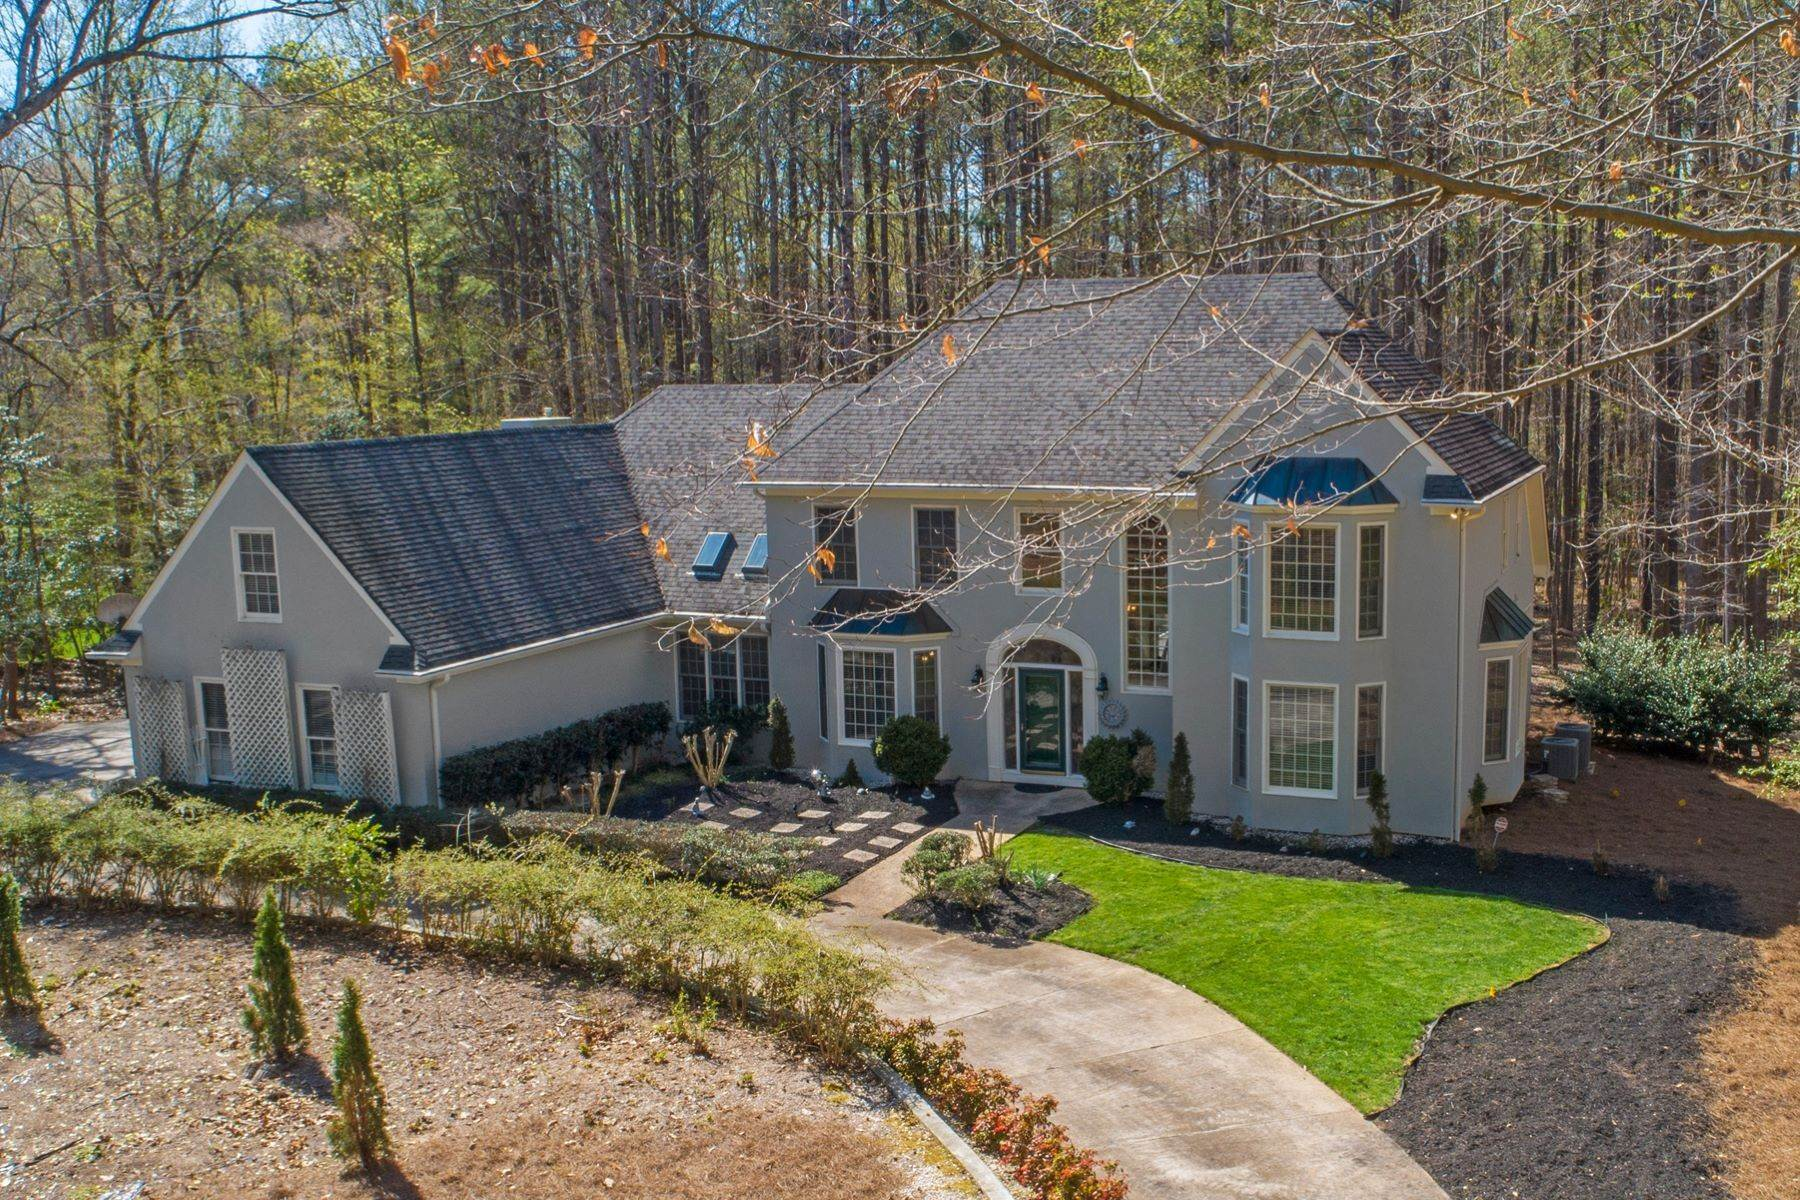 Single Family Homes for Sale at An alluring abode on an expansive lot, tucked within a prestigious subdivision 9709 Pentland Road Raleigh, North Carolina 27614 United States